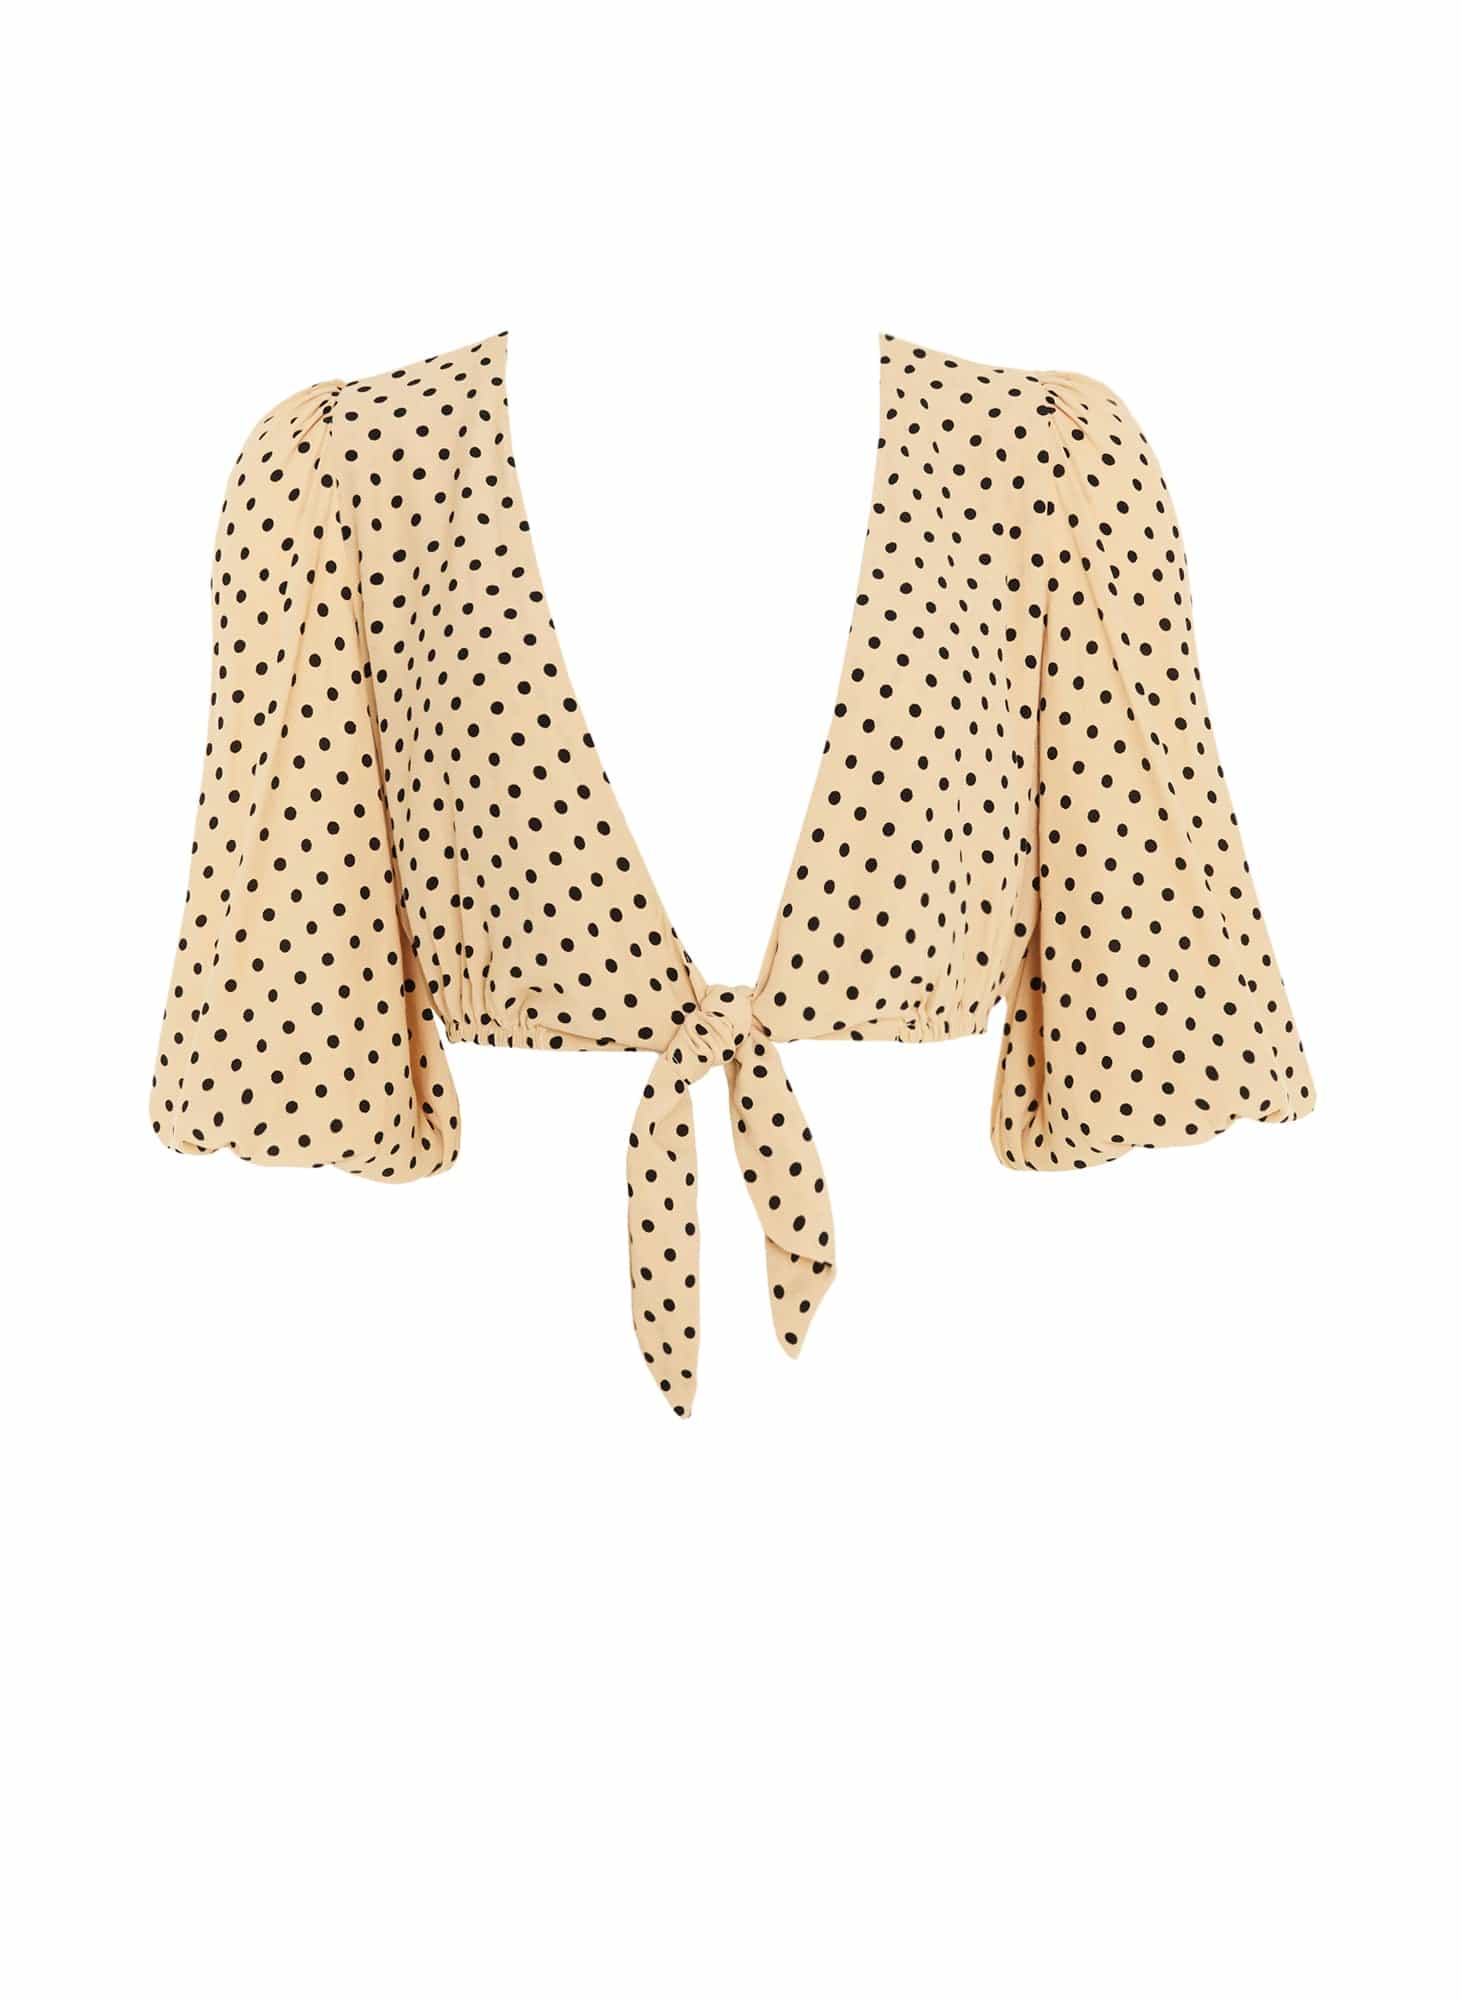 LULA DOT PRINT - LA GUARDIA TOP